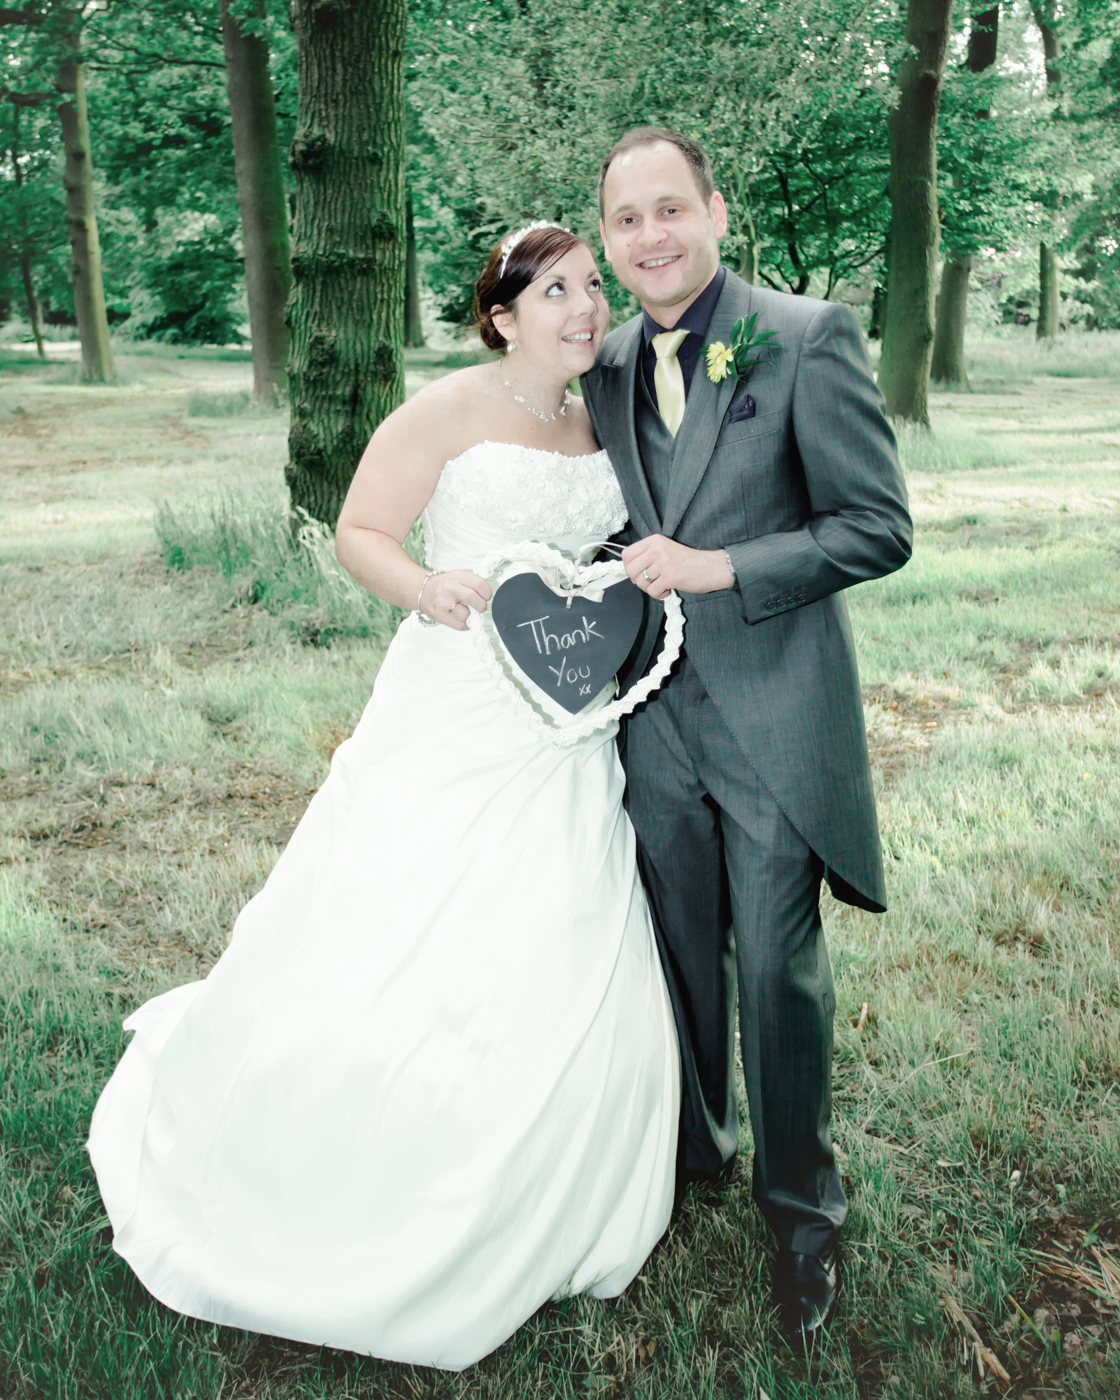 544 - Chris and Natalies Wedding (MAIN) - DO NOT SHARE THIS IMAGES ONLINE -0889.JPG